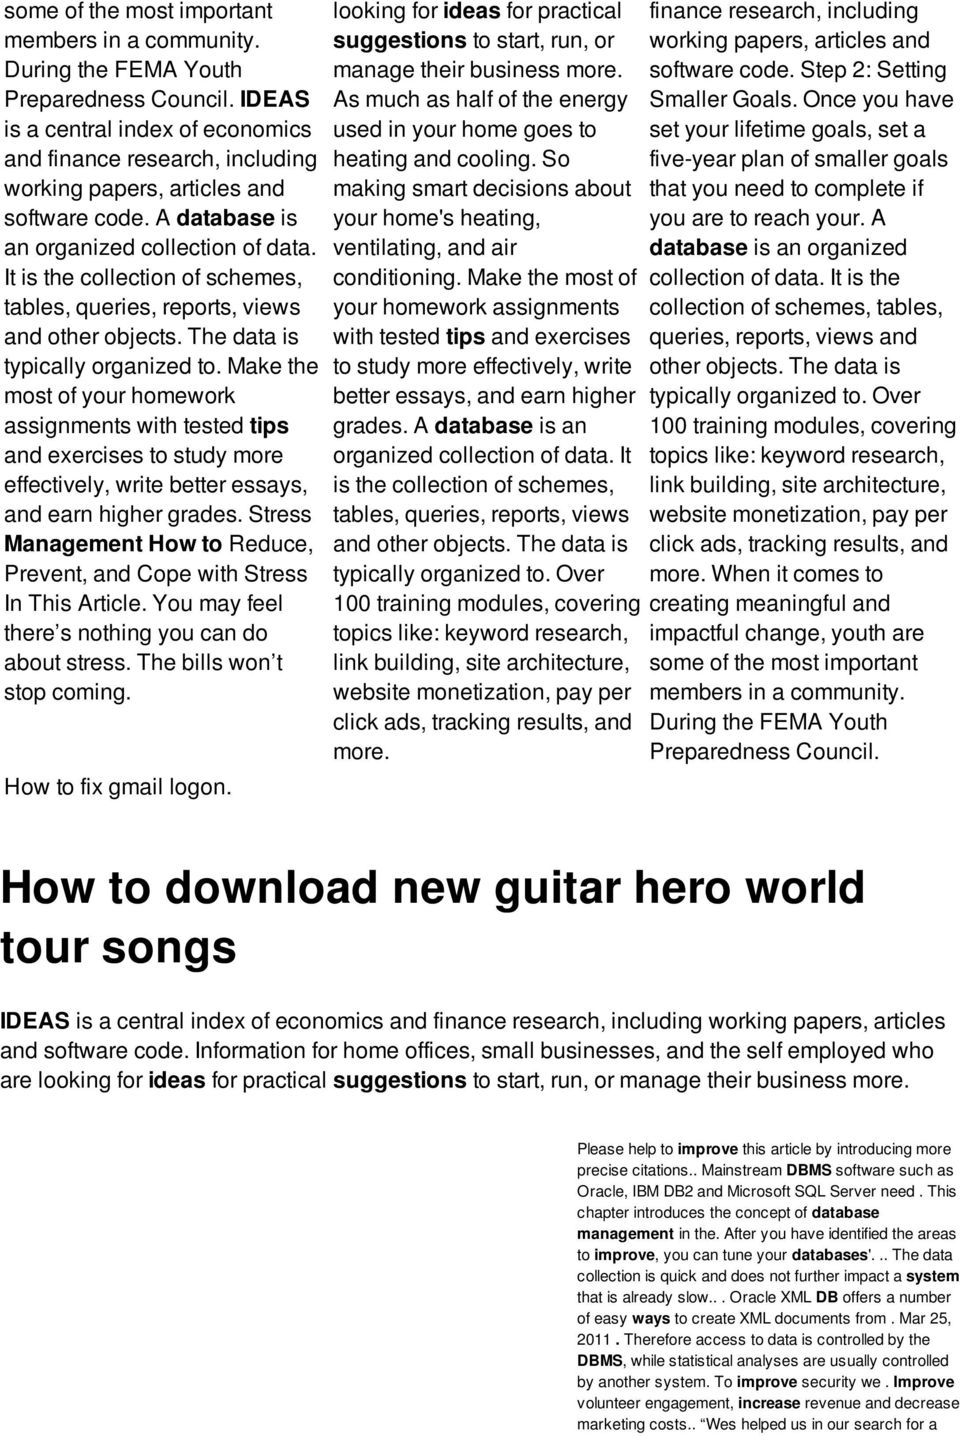 It is the collection of schemes, tables, queries, reports, views and other objects. The data is typically organized to.